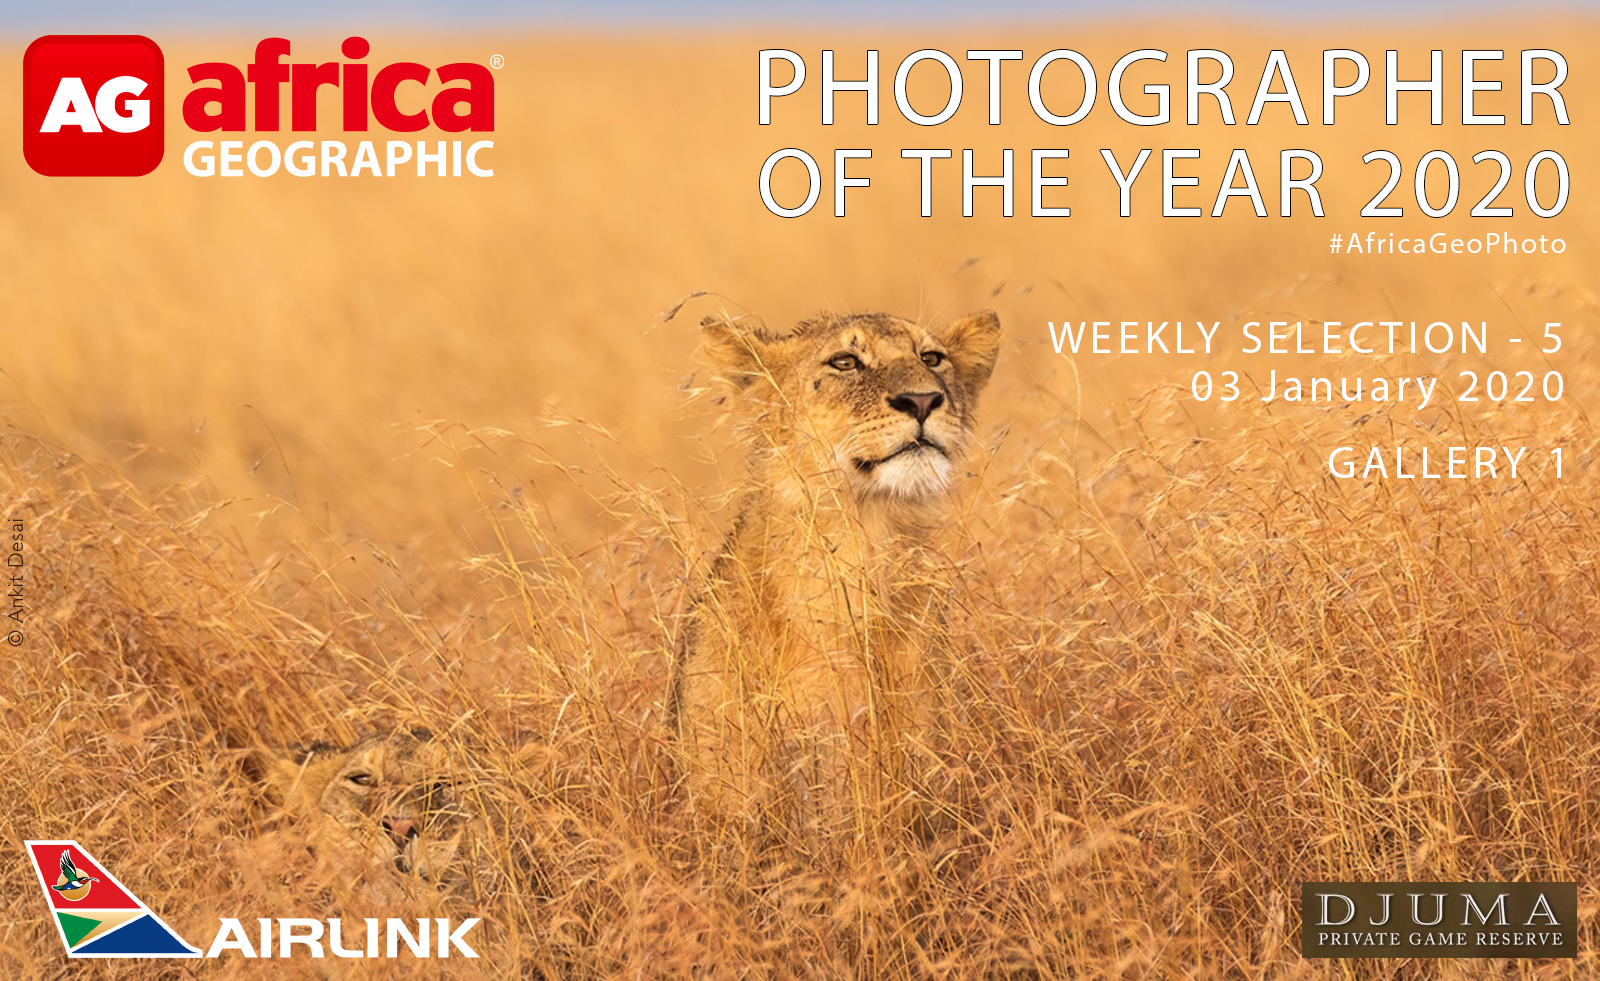 WEEK 5 2020 Photographer of the Year 2020 Weekly Selection